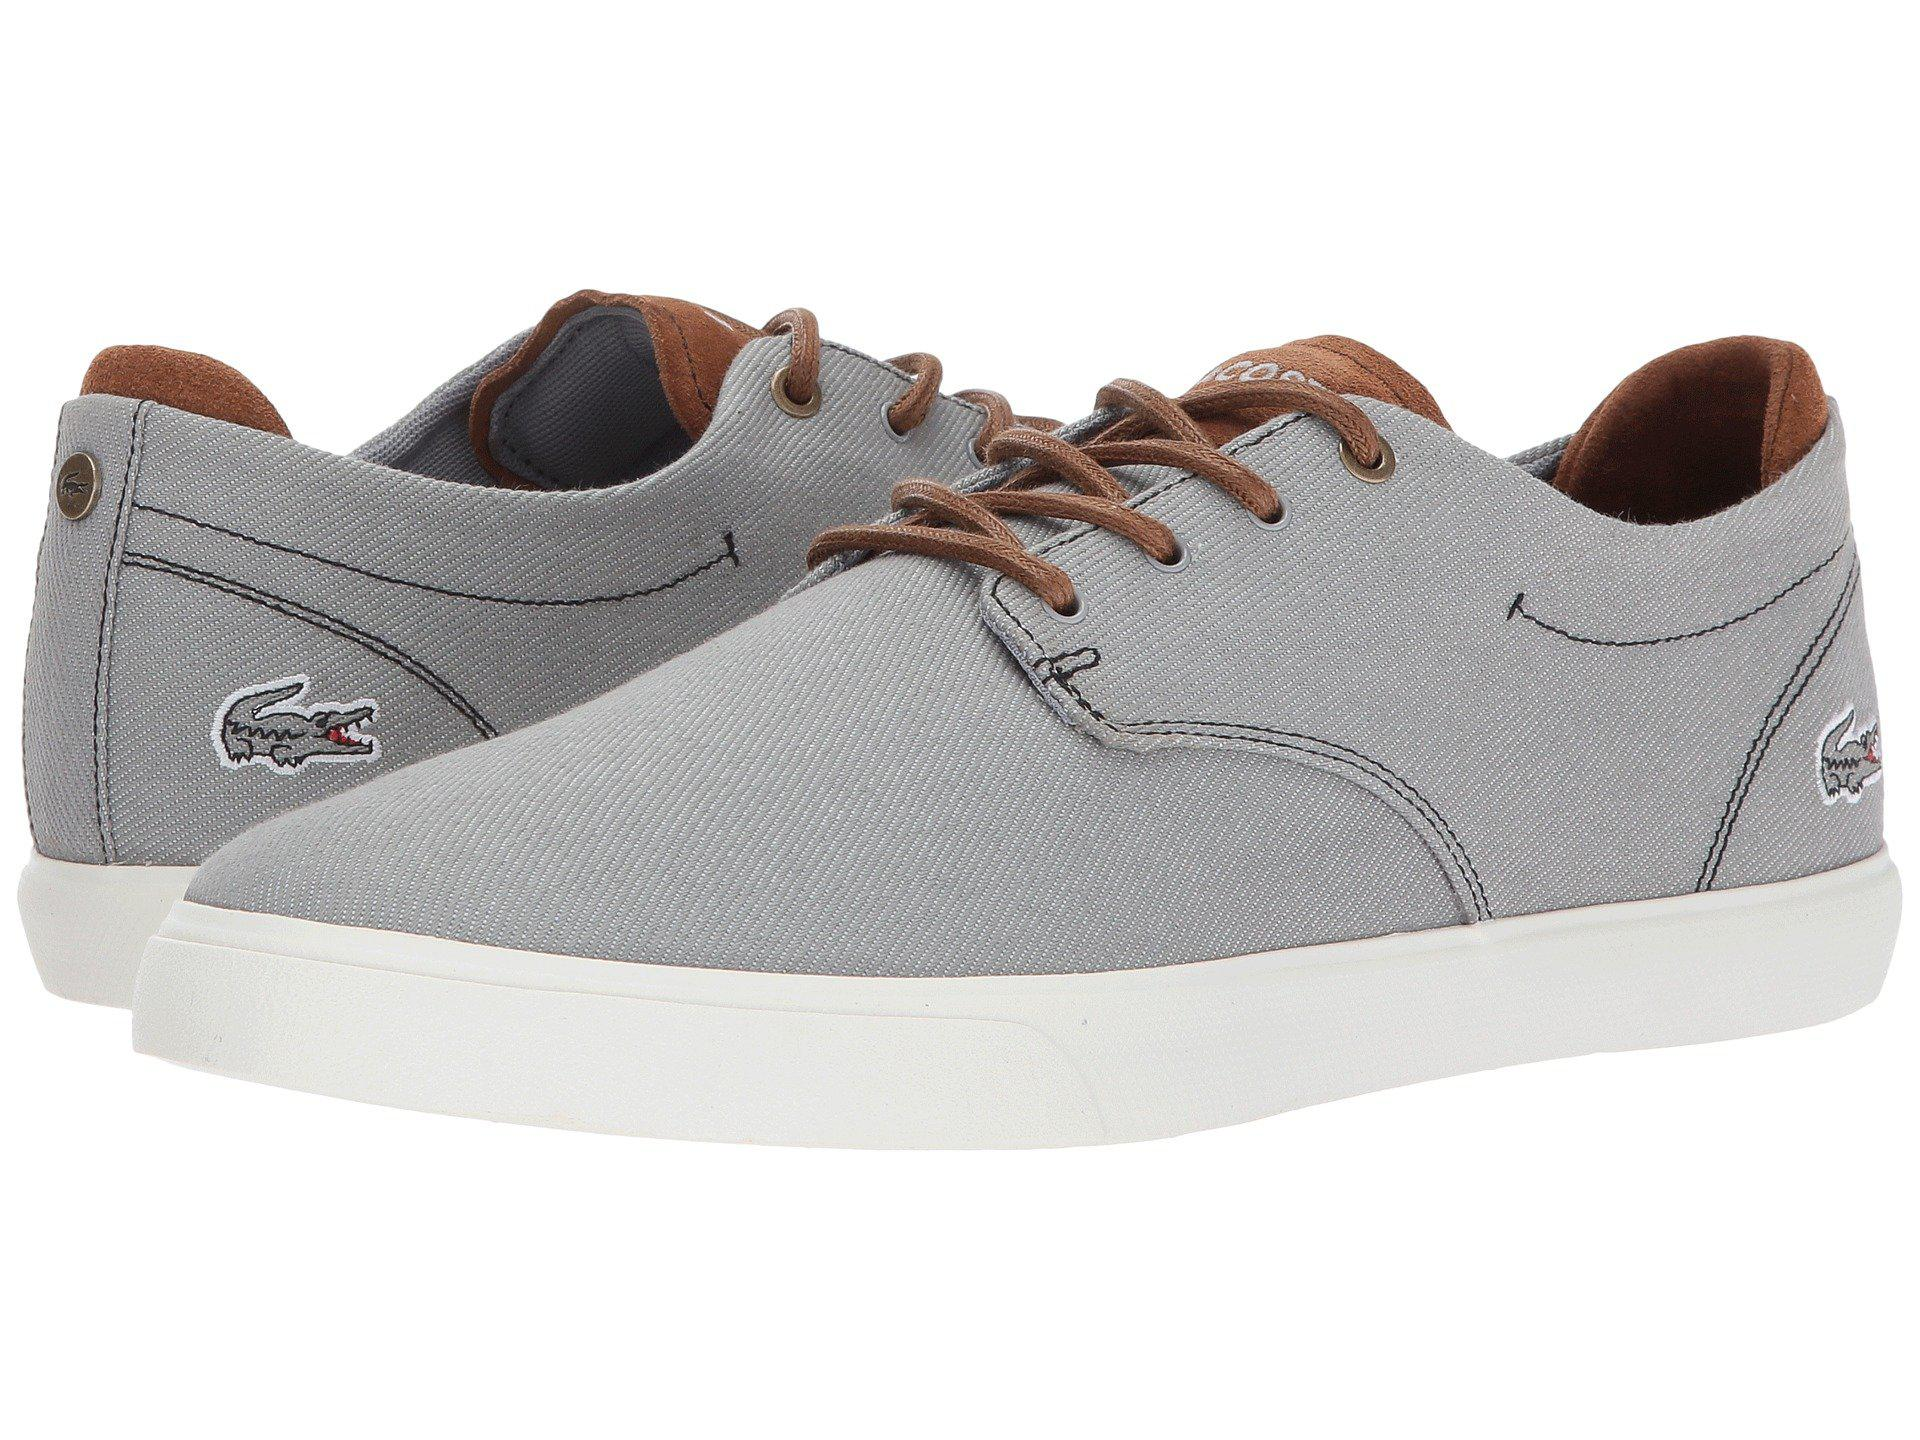 7e774598931eee Lyst - Lacoste Esparre 318 3 in Gray for Men - Save 44%